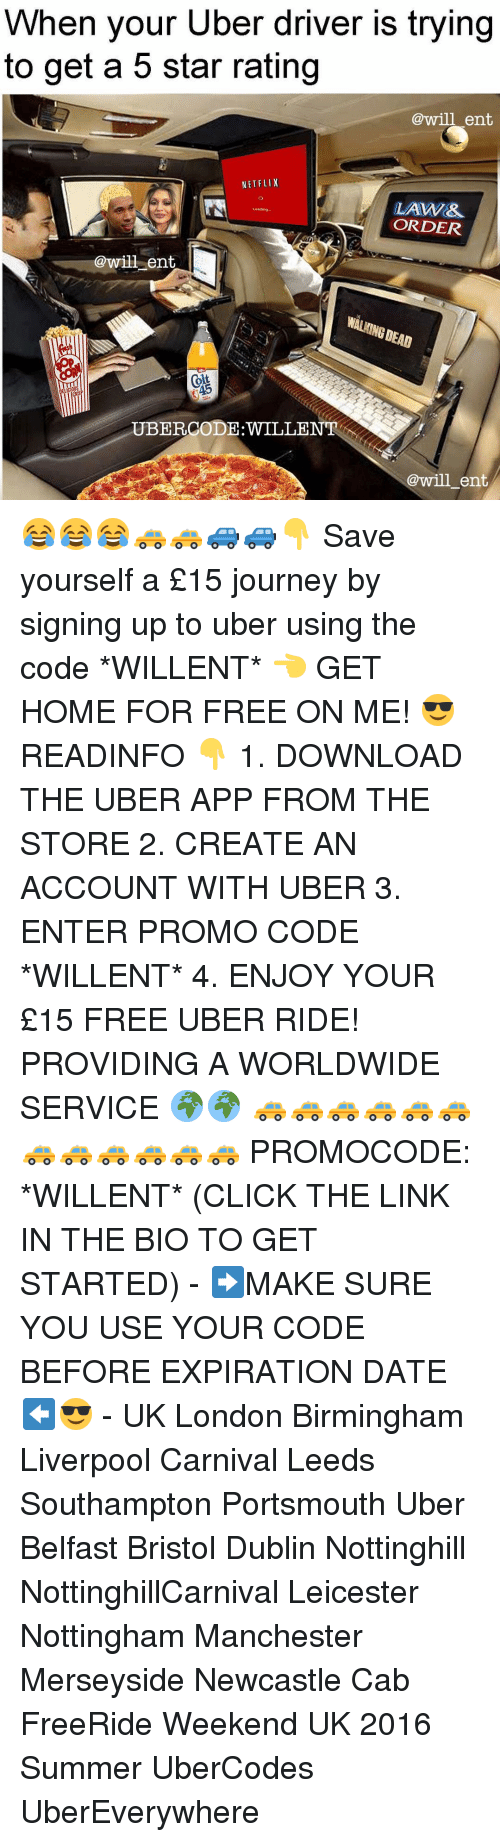 Journey, Memes, and Uber: When your Uber driver is trying  to get a 5 star rating  @will ent  NETFLIX  LAW&  Loading..  ORDER  @will ent  ELICO  @will ent 😂😂😂🚕🚕🚙🚙👇 Save yourself a £15 journey by signing up to uber using the code *WILLENT* 👈 GET HOME FOR FREE ON ME! 😎 READINFO 👇 1. DOWNLOAD THE UBER APP FROM THE STORE 2. CREATE AN ACCOUNT WITH UBER 3. ENTER PROMO CODE *WILLENT* 4. ENJOY YOUR £15 FREE UBER RIDE! PROVIDING A WORLDWIDE SERVICE 🌍🌍 🚕🚕🚕🚕🚕🚕🚕🚕🚕🚕🚕🚕 PROMOCODE: *WILLENT* (CLICK THE LINK IN THE BIO TO GET STARTED) - ➡️MAKE SURE YOU USE YOUR CODE BEFORE EXPIRATION DATE ⬅️😎 - UK London Birmingham Liverpool Carnival Leeds Southampton Portsmouth Uber Belfast Bristol Dublin Nottinghill NottinghillCarnival Leicester Nottingham Manchester Merseyside Newcastle Cab FreeRide Weekend UK 2016 Summer UberCodes UberEverywhere